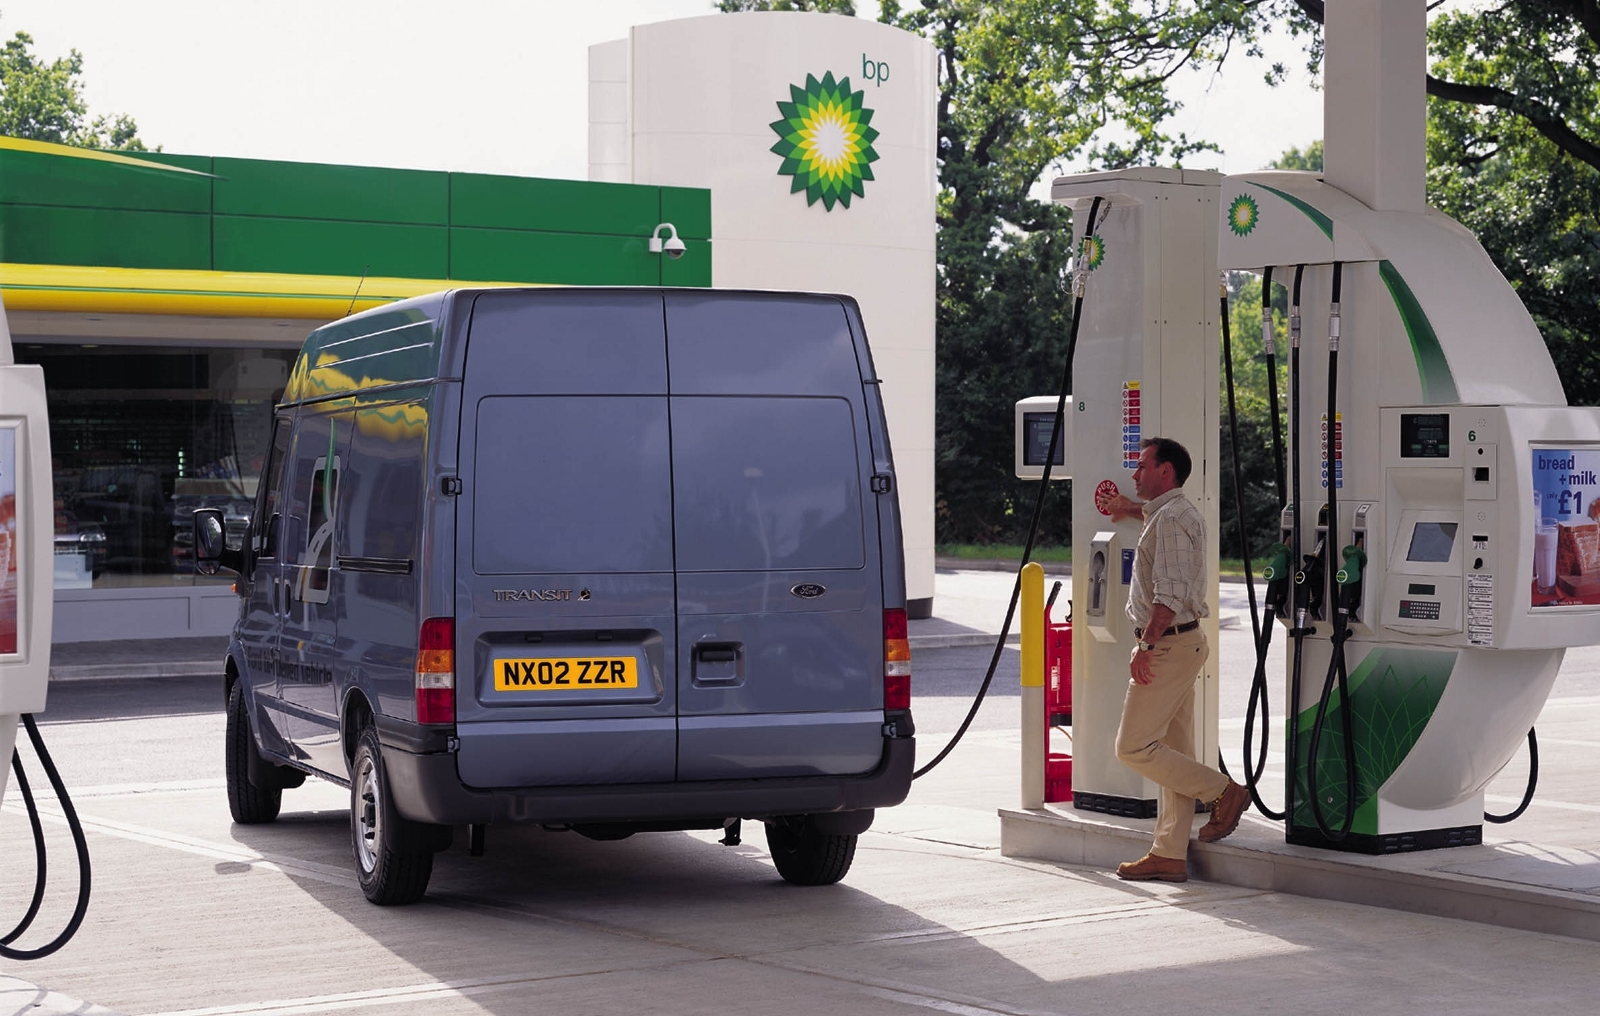 Cheap fuel prices